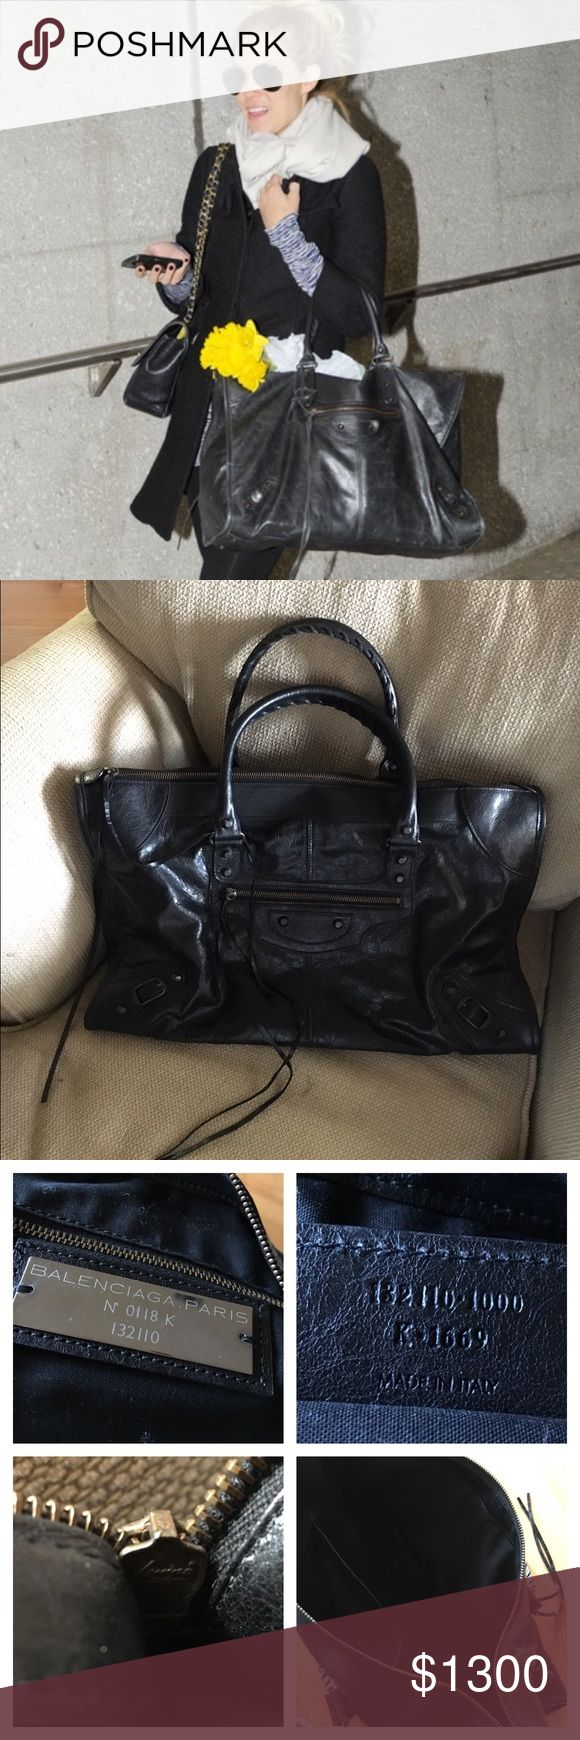 Balenciaga Weekender Gorgeous Balenciaga weekend bag. Dust bag included. I am happy to answer any additional questions. **First photo is not of this bag. PRICE IS FIRM. NO TRADES. Balenciaga Bags Totes